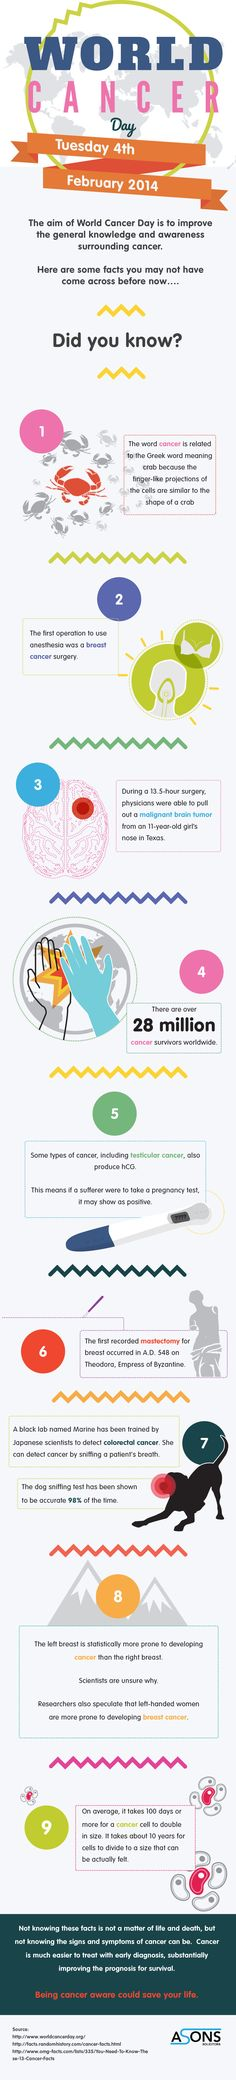 World Cancer Day 4th February 2014   #Infographic #Cancer #Health